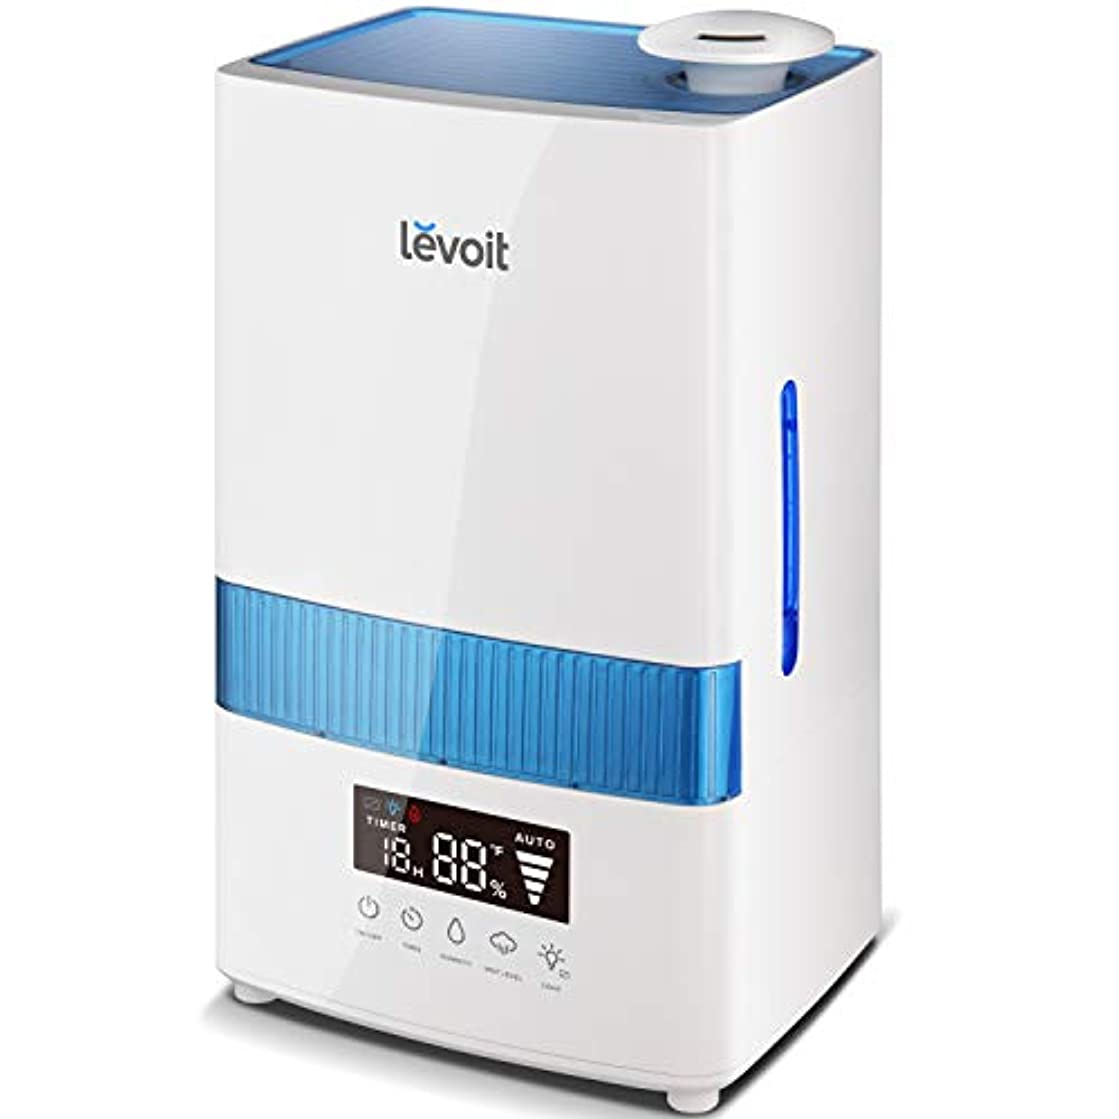 LEVOIT Cool Mist Humidifiers, 4.5L Ultrasonic Humidifier for Bedroom and Babies with Humidity Monitor, Vaporizer for Large Room, Whisper-Quiet, Auto Shutoff, 40 Hrs Working Time, 2-Year Warranty